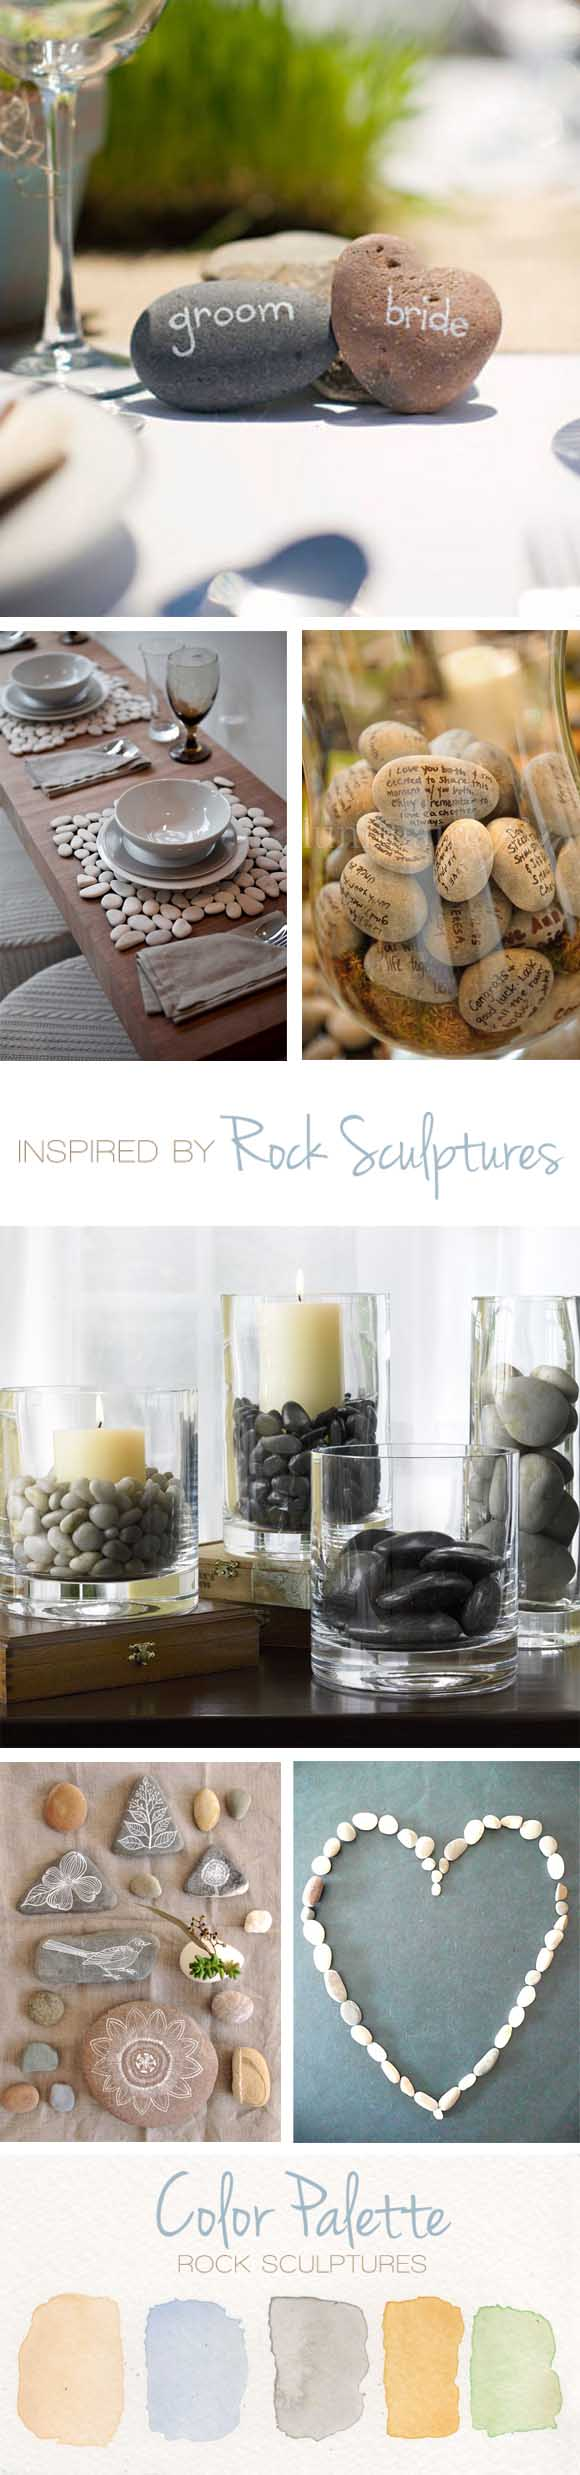 Rock Sculpture: Reception Ideas